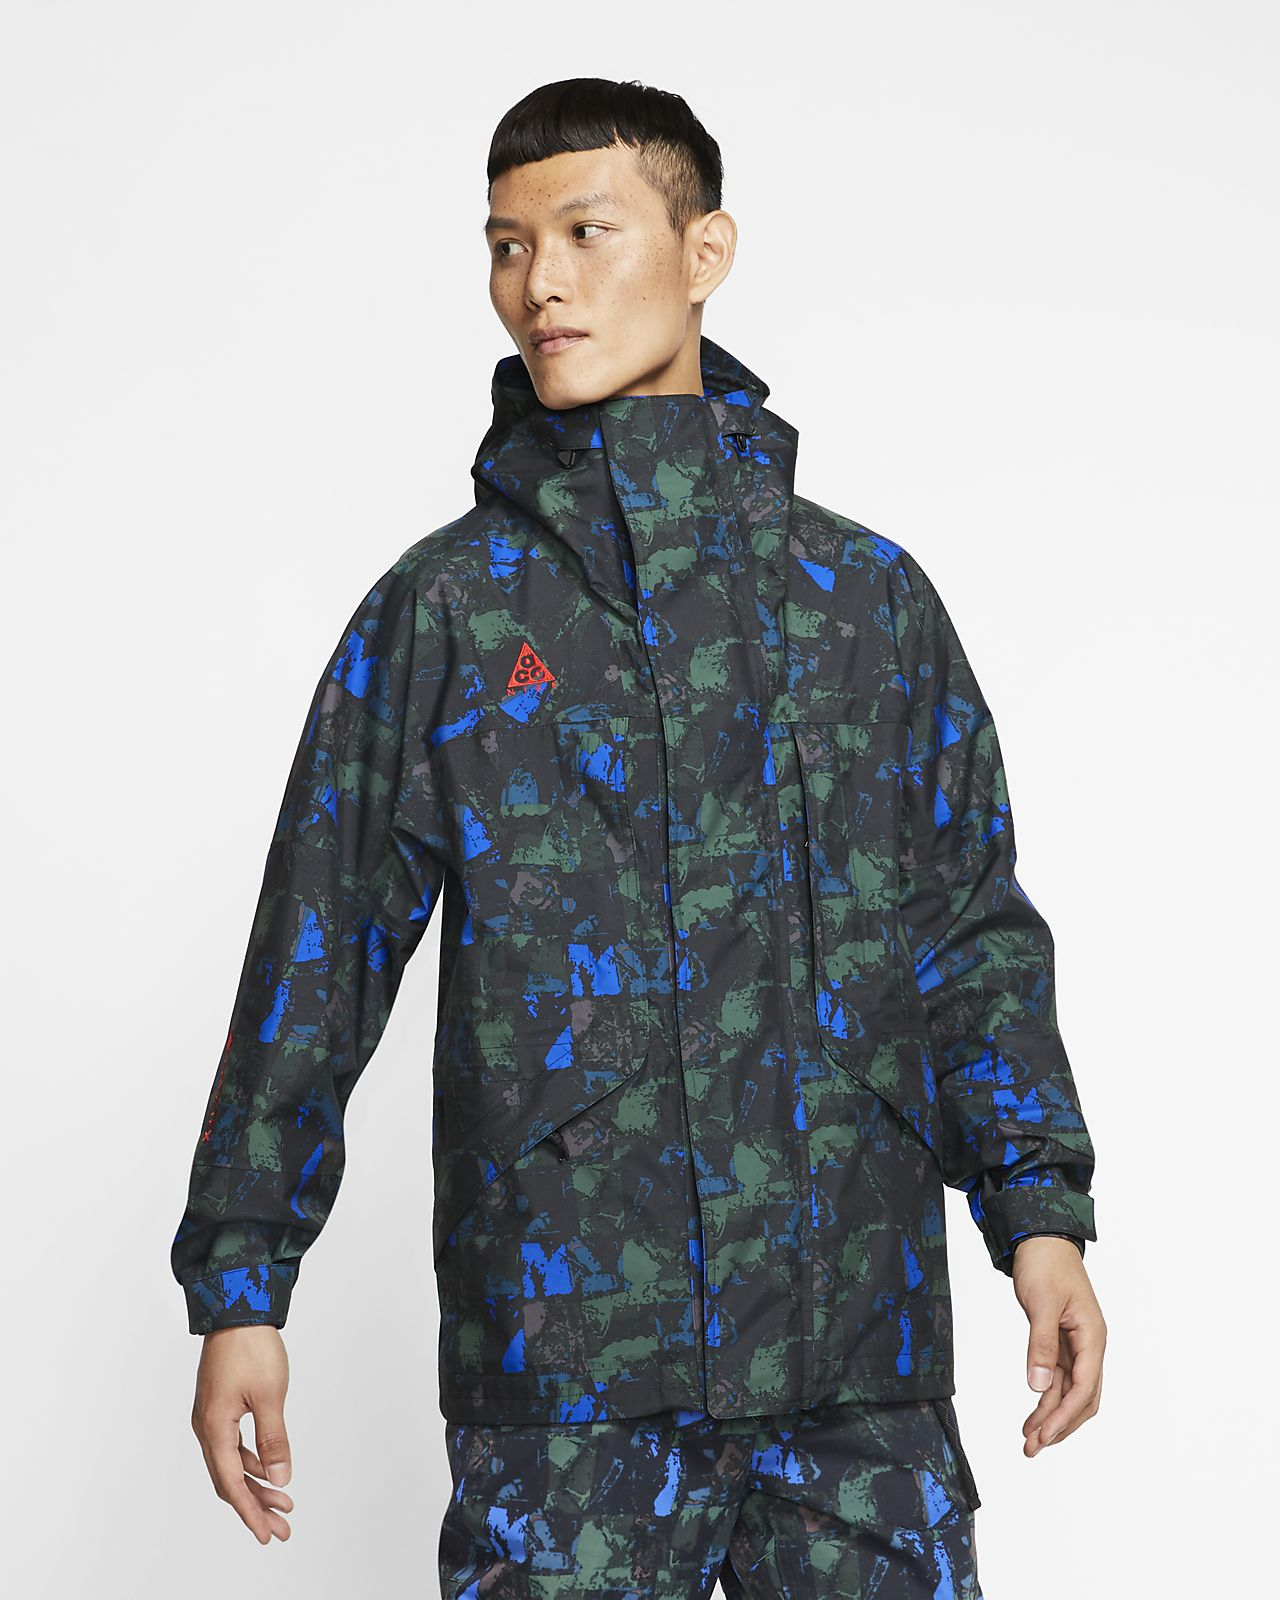 Nike ACG GORE-TEX Men's Allover Print Jacket